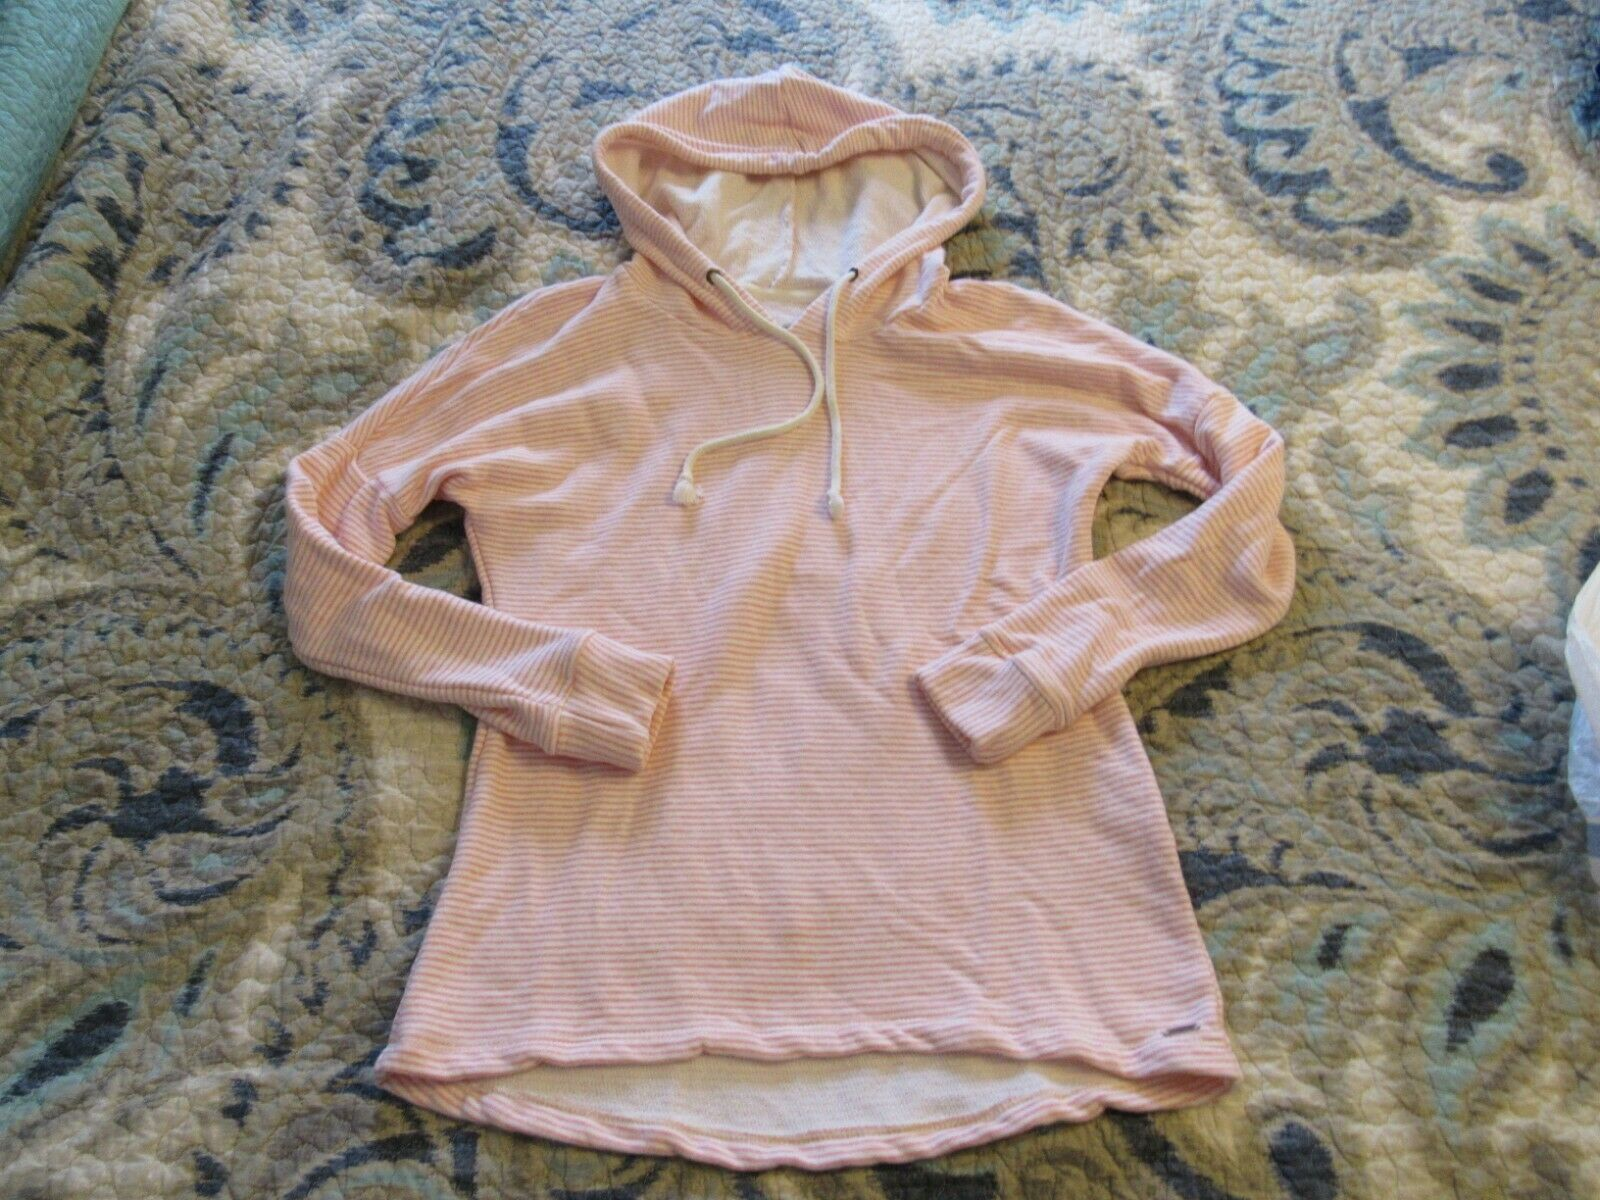 O'Neill Size S, Small White with Pink Stripes 100% Soft Cotton Hoodie Sweatshirt